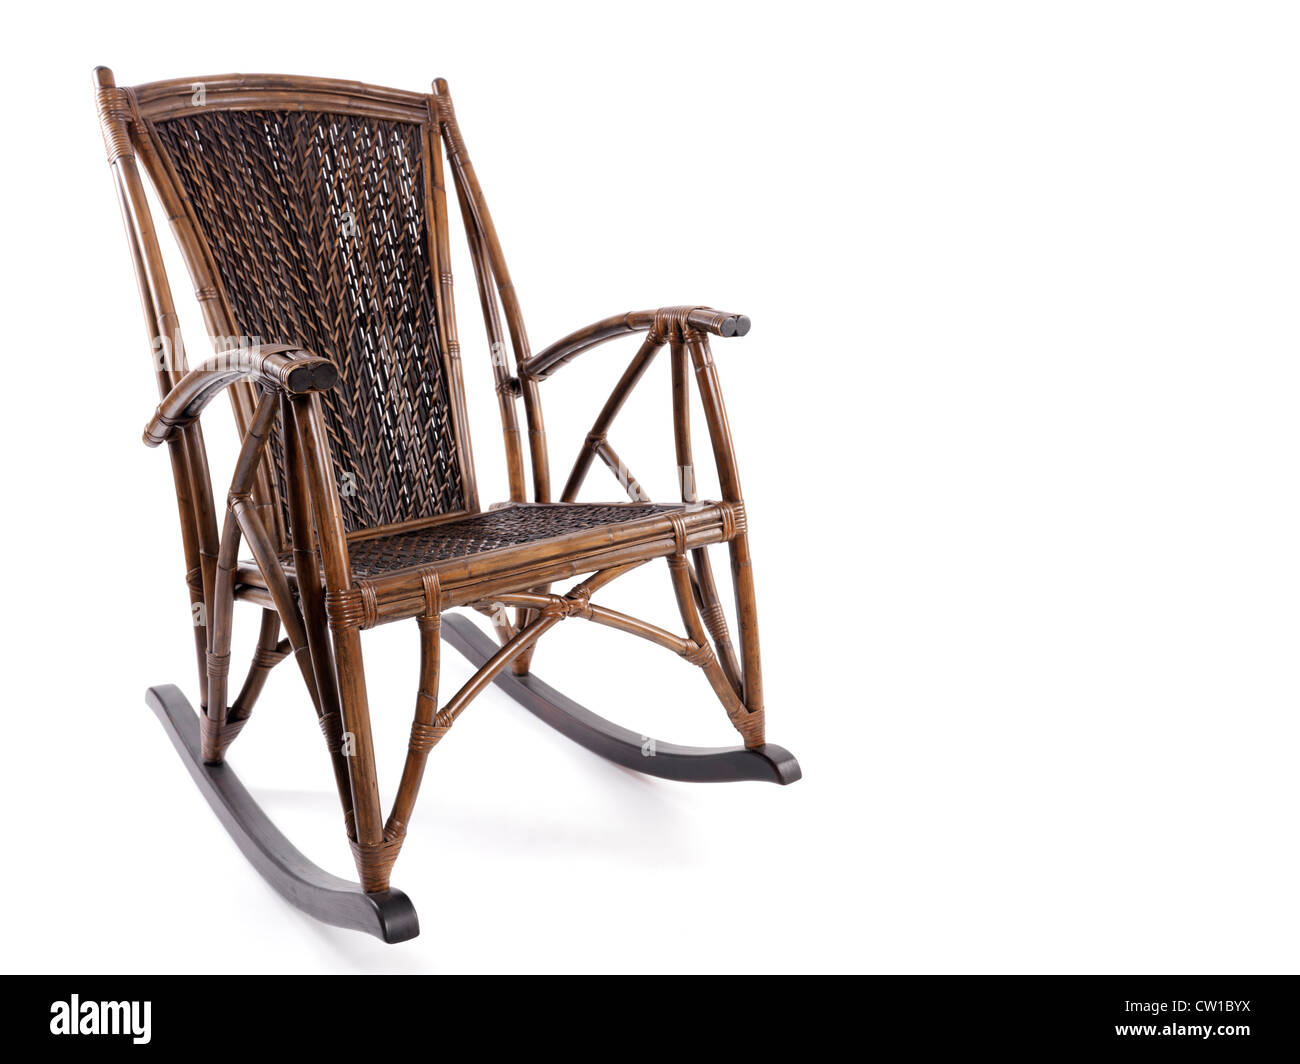 sale with dr prices chairs rare hd chair antique vintage position rattan cane value ilmari shop no styles for at the spri photos rocking springs rocker tapiovaara charming wicker large